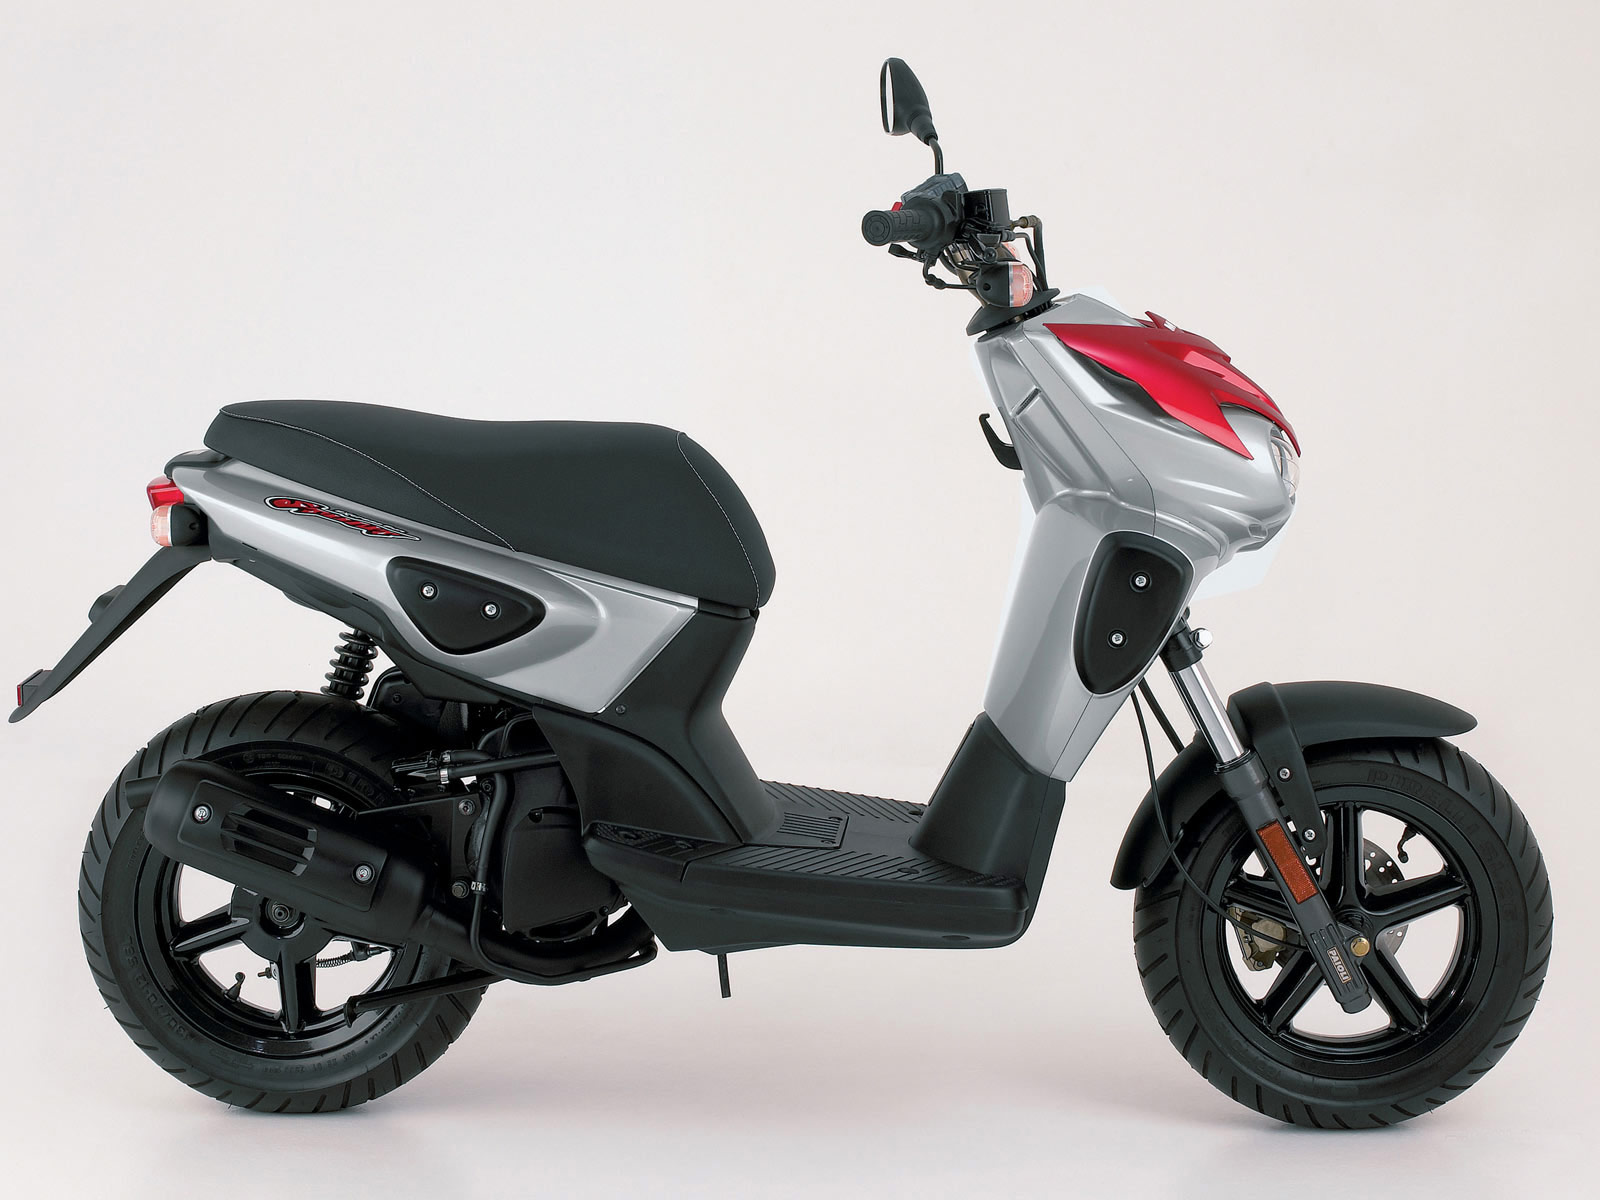 2006 mbk stunt scooter accident lawyers info pictures specs. Black Bedroom Furniture Sets. Home Design Ideas